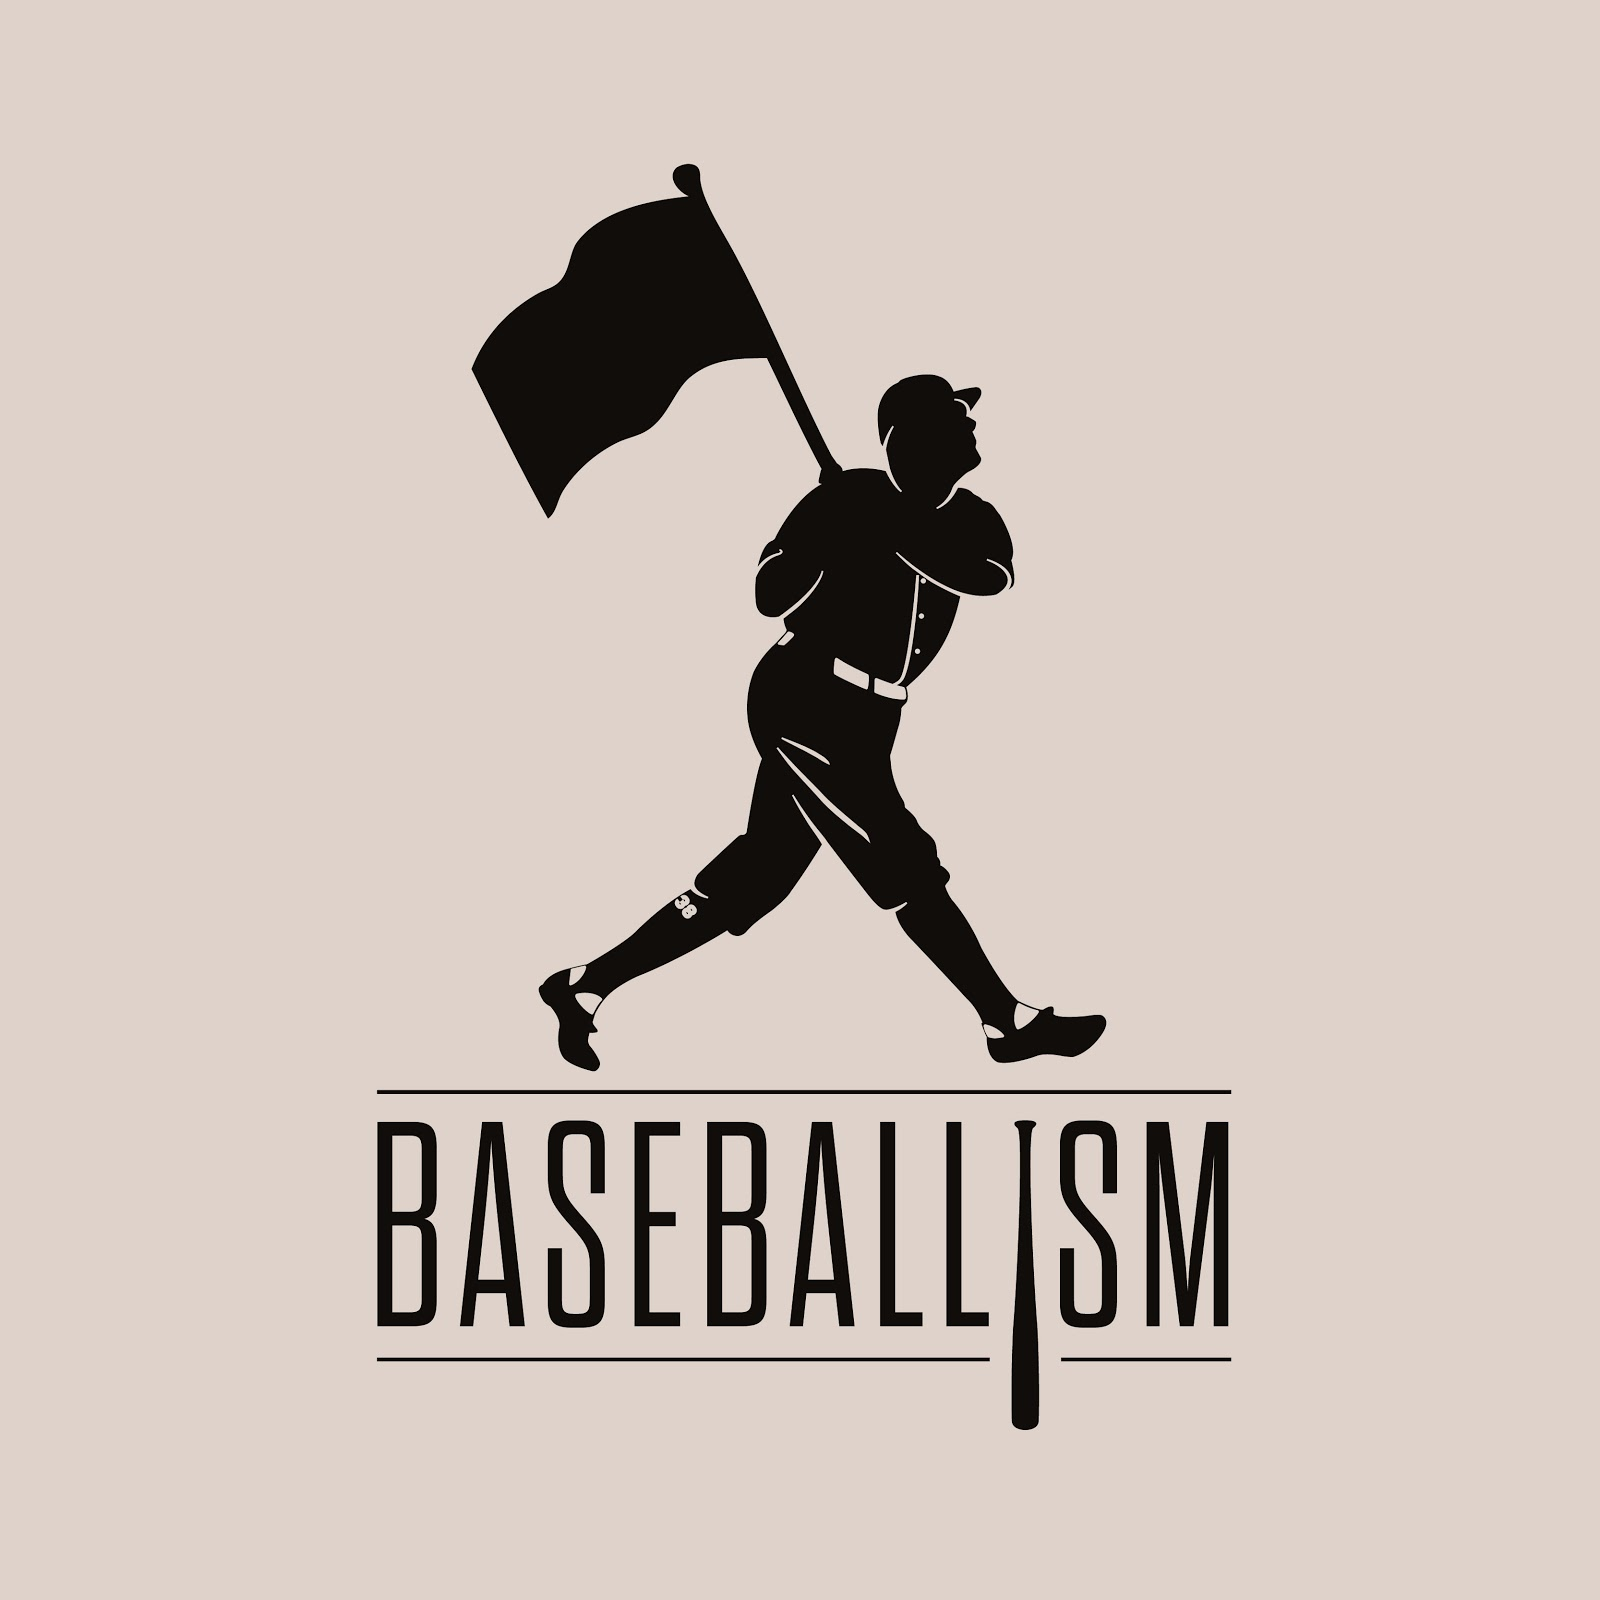 Baseball Quotes Pictures And Images With Message